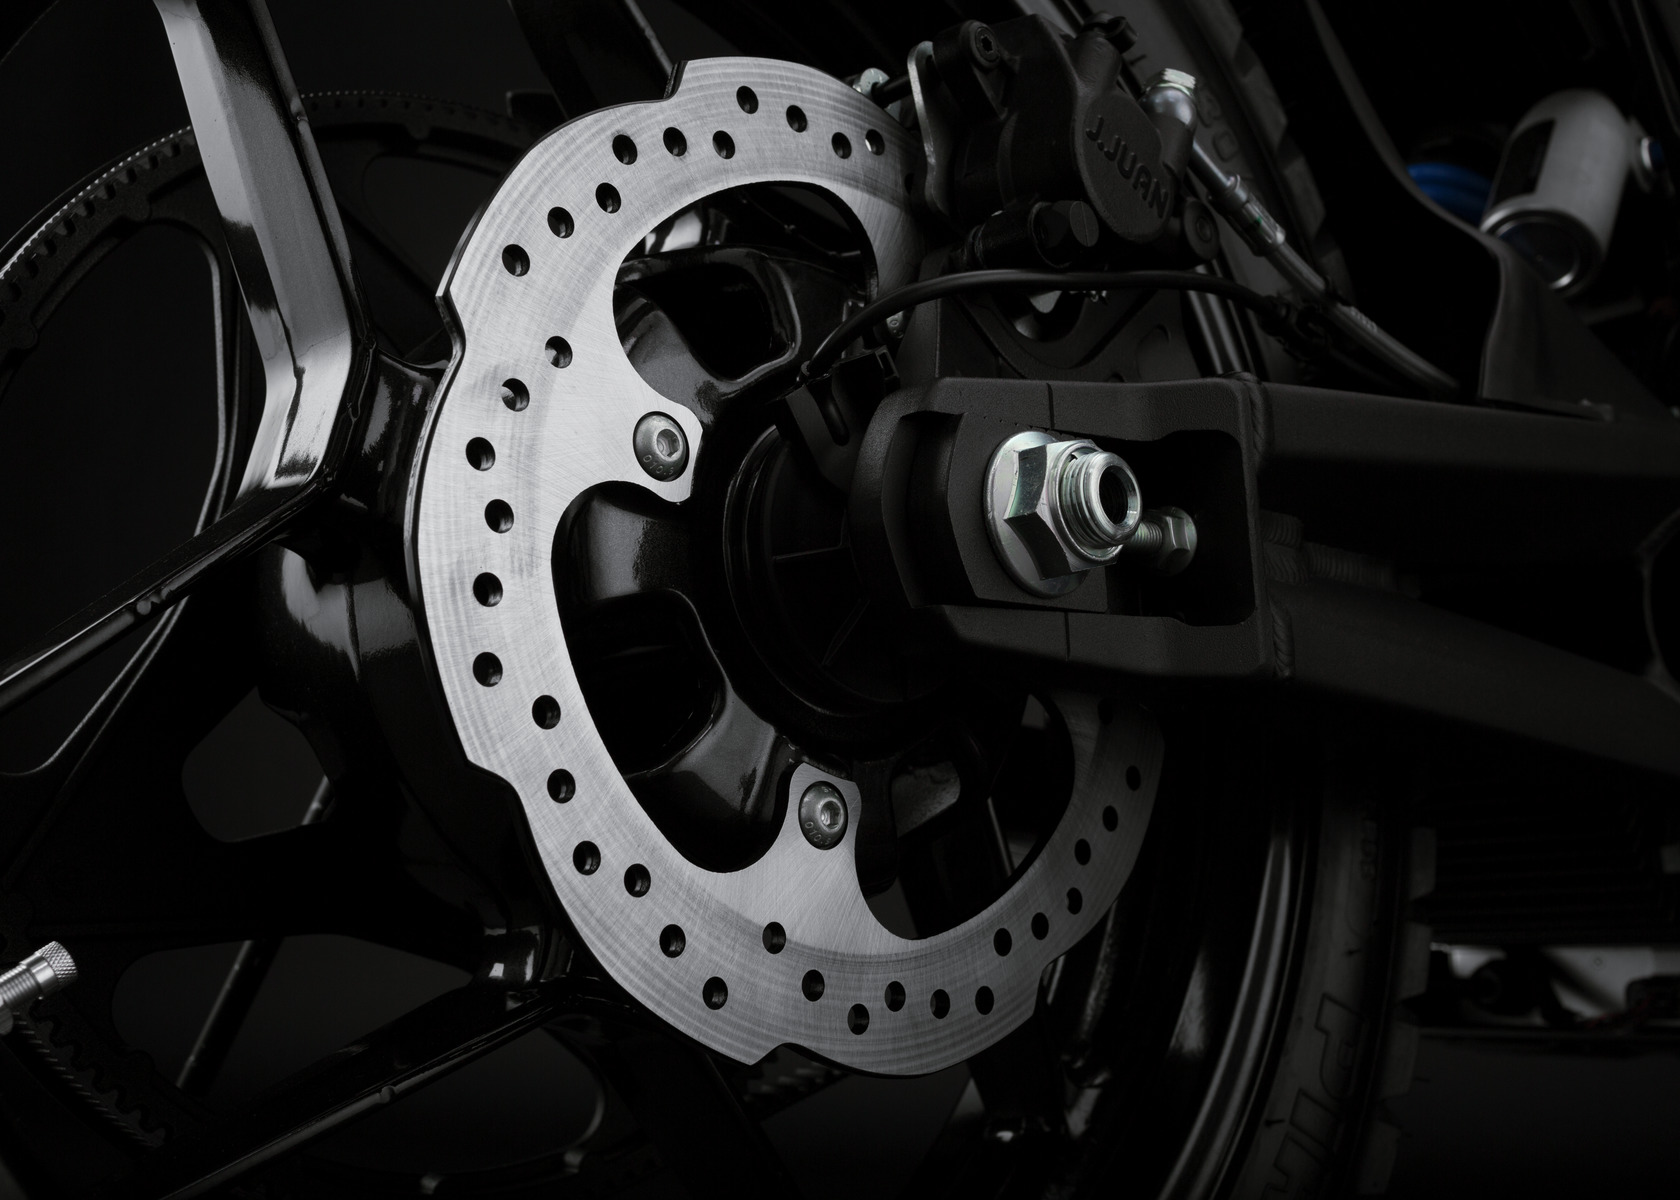 2016 Zero DSR Electric Motorcycle: Rear Brake